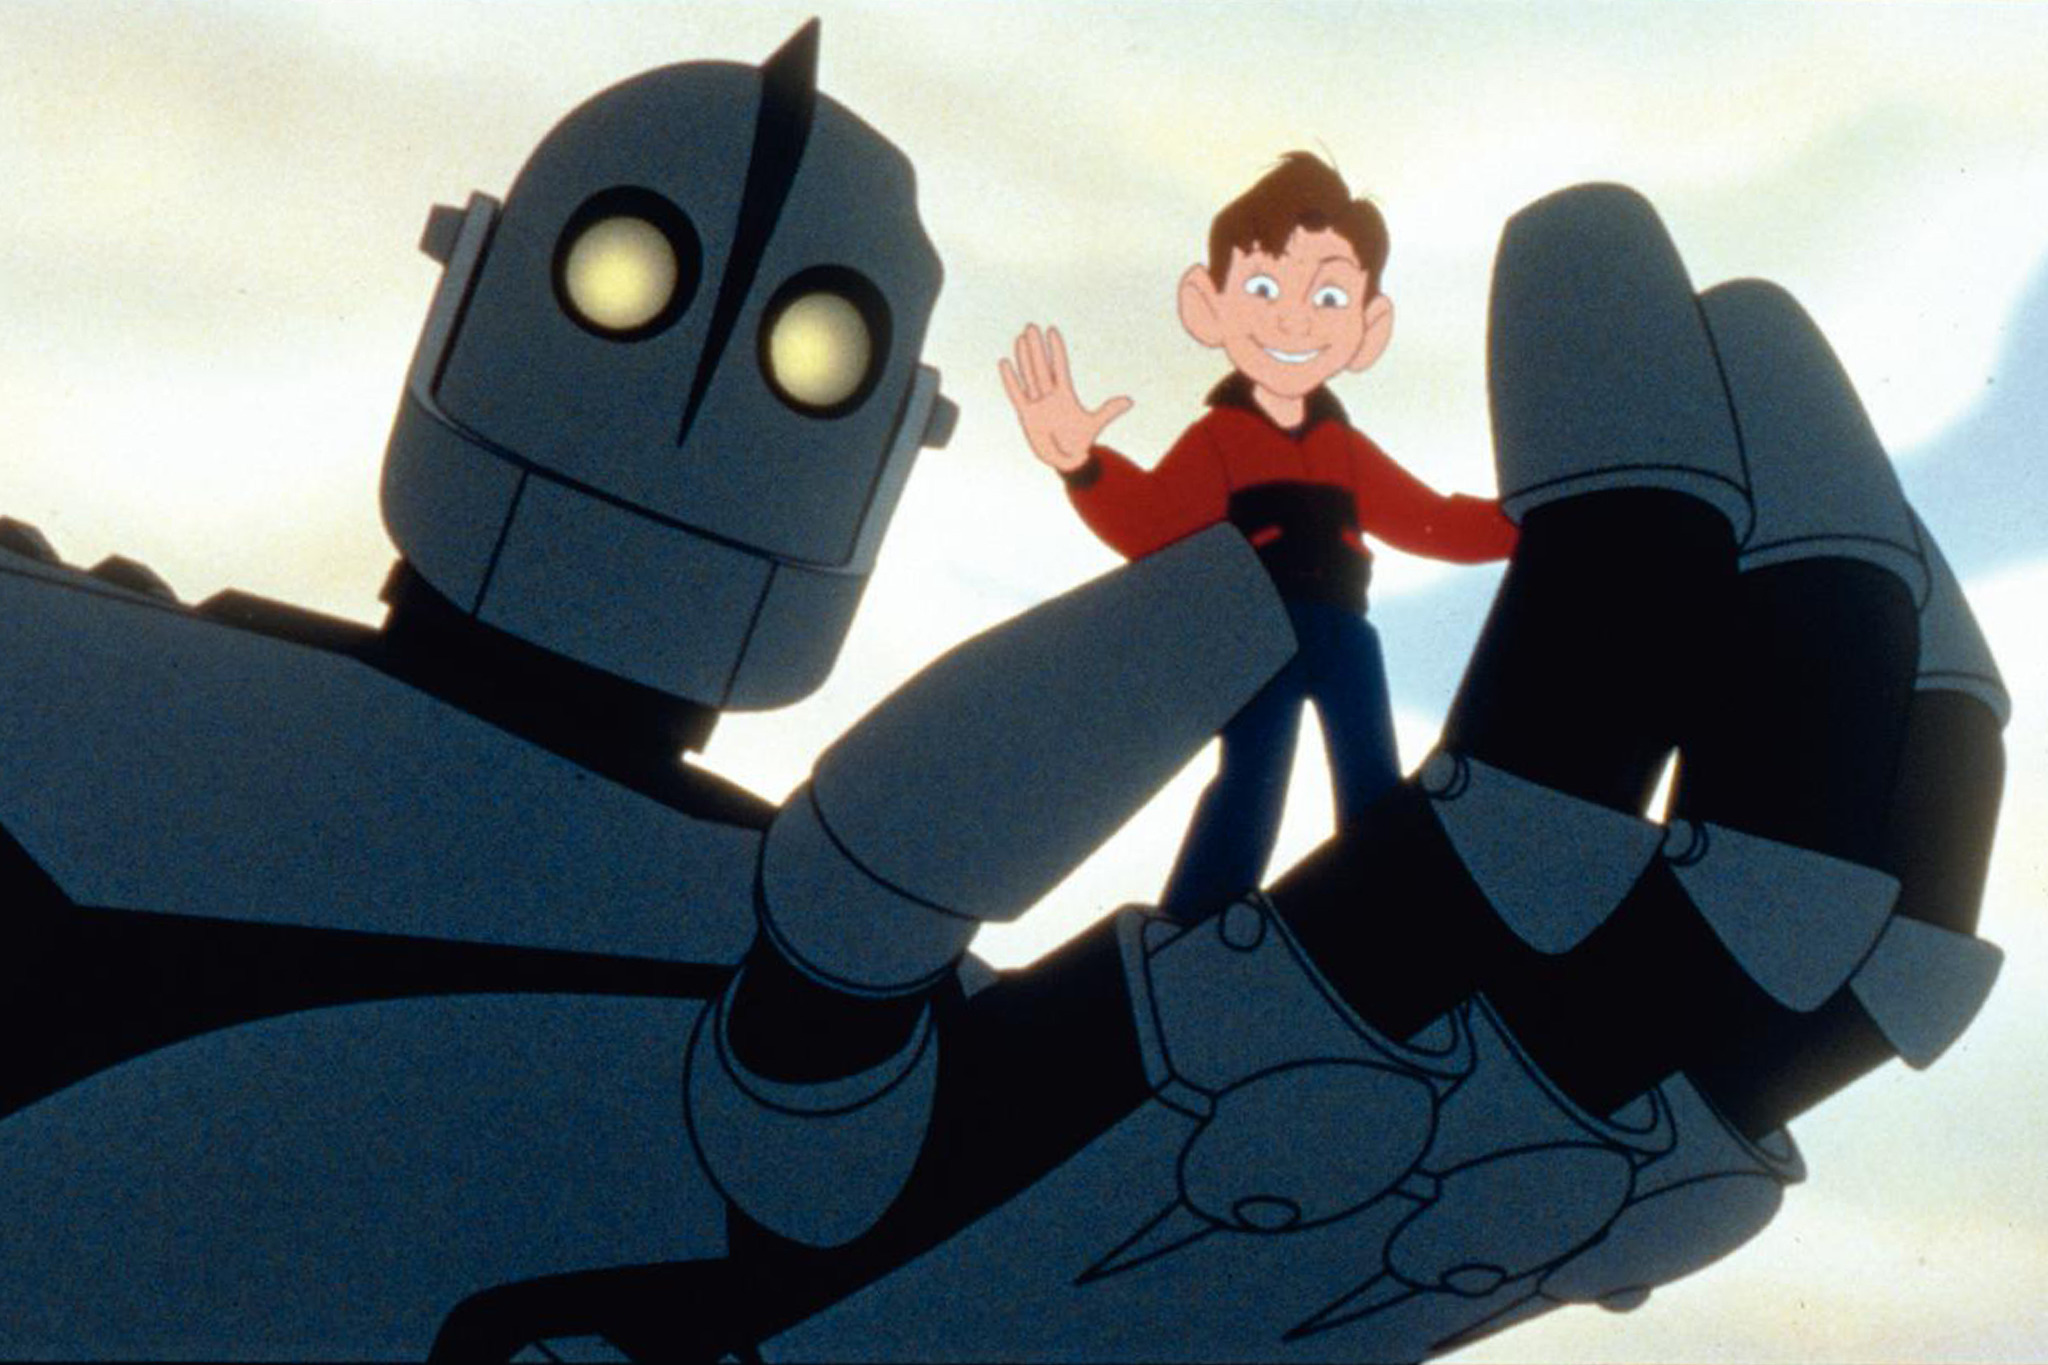 Best animation movies: The Iron Giant